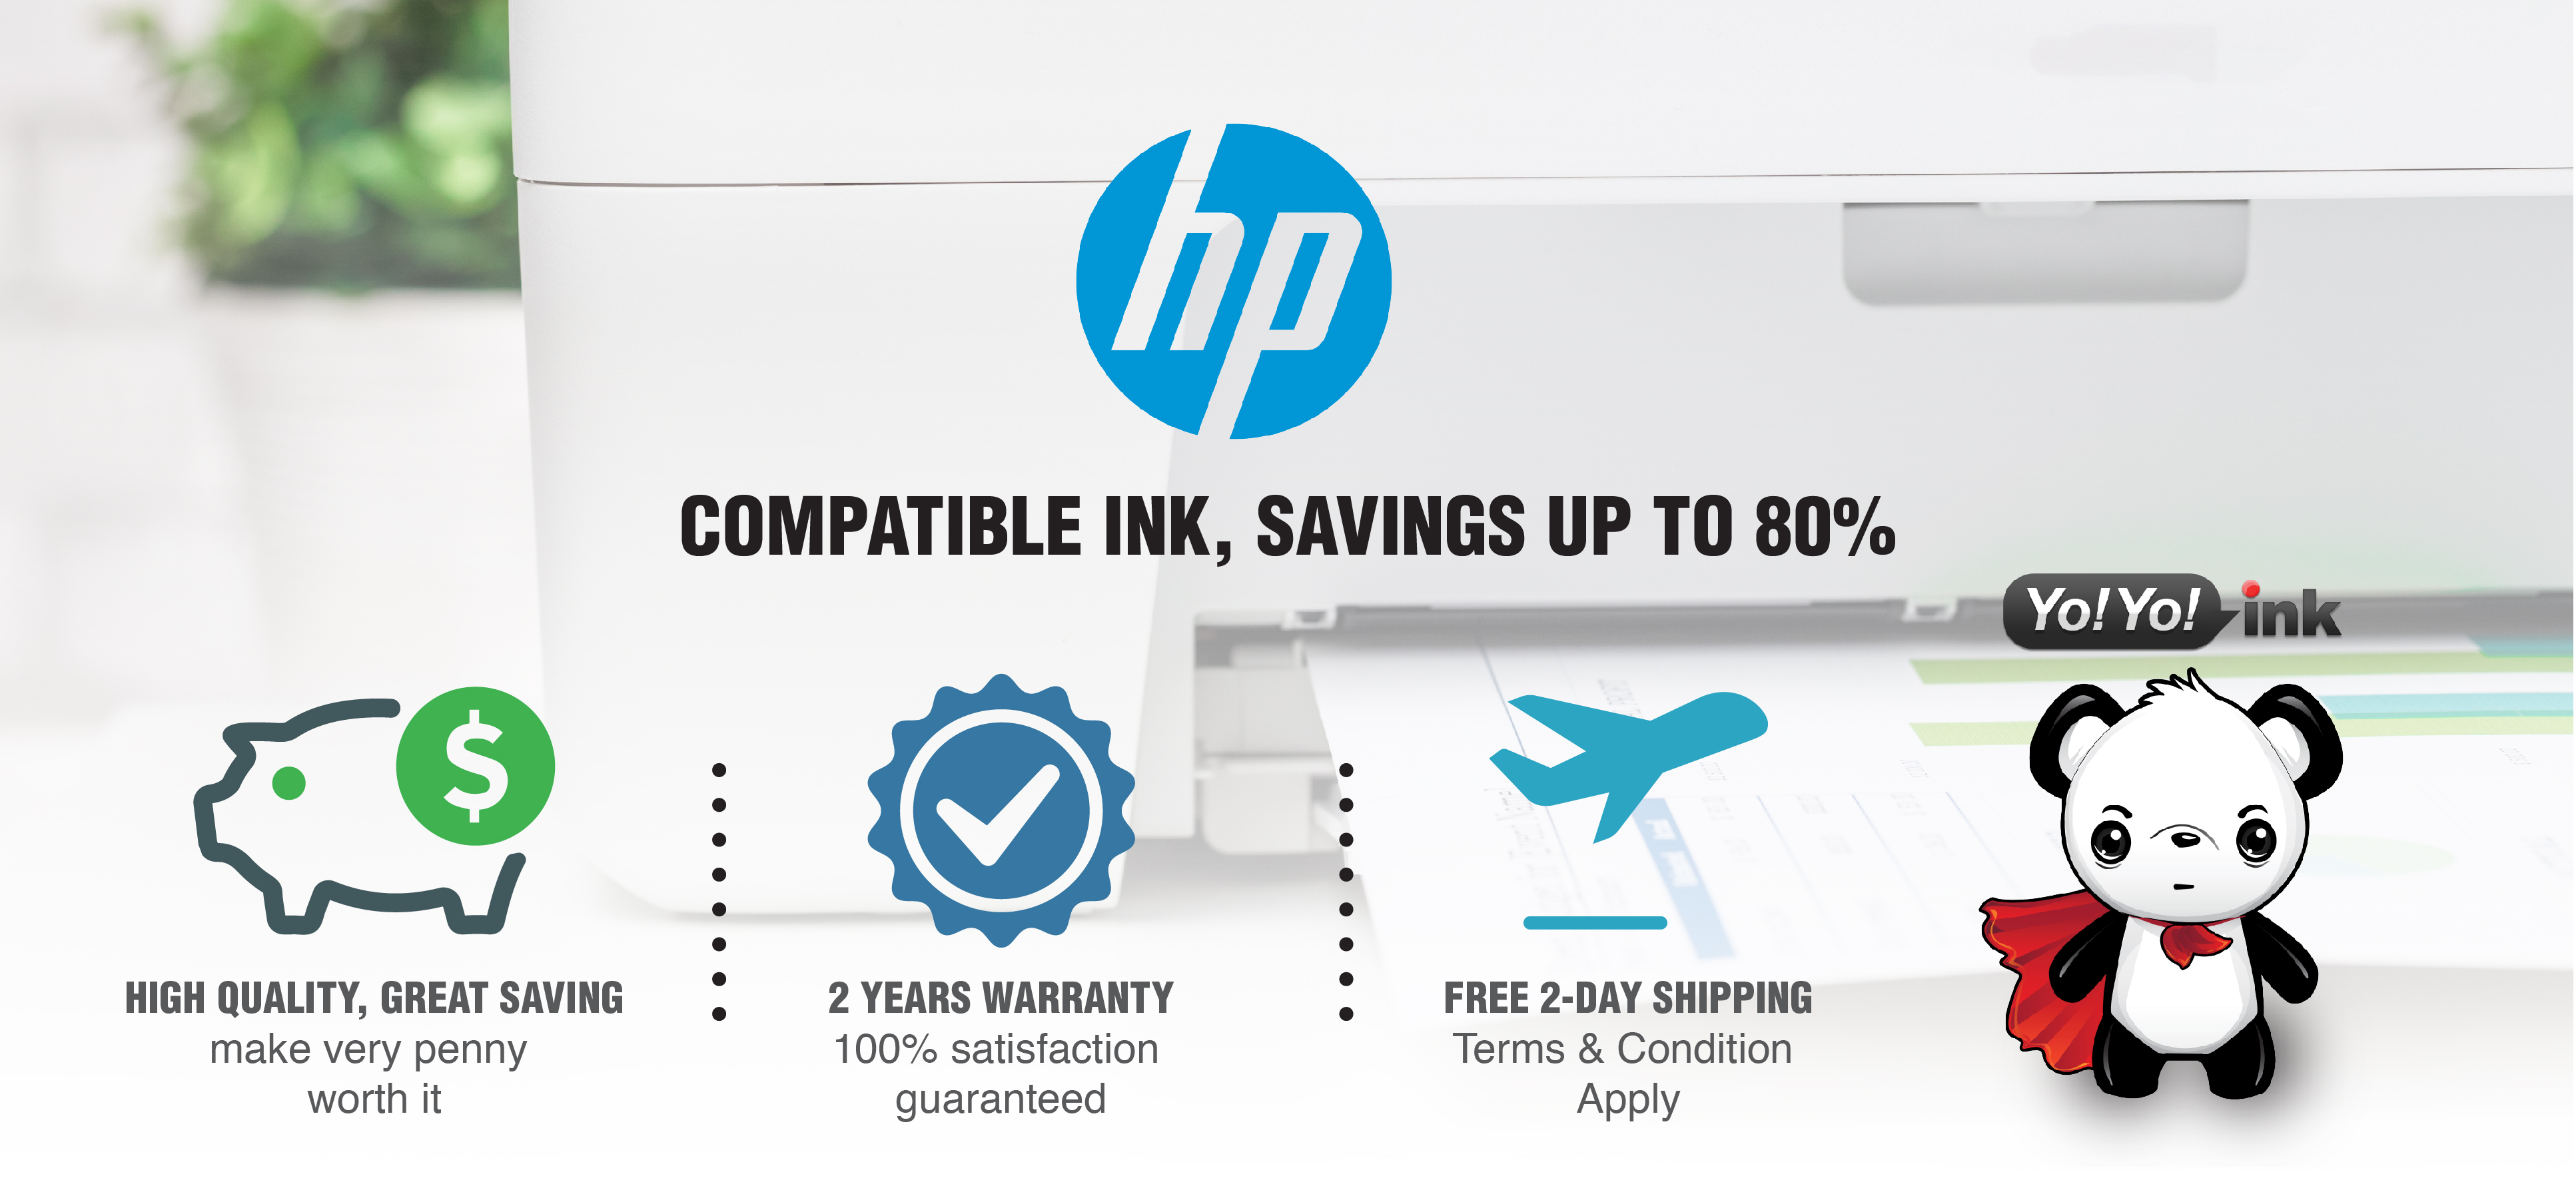 hp printer ink cartridge